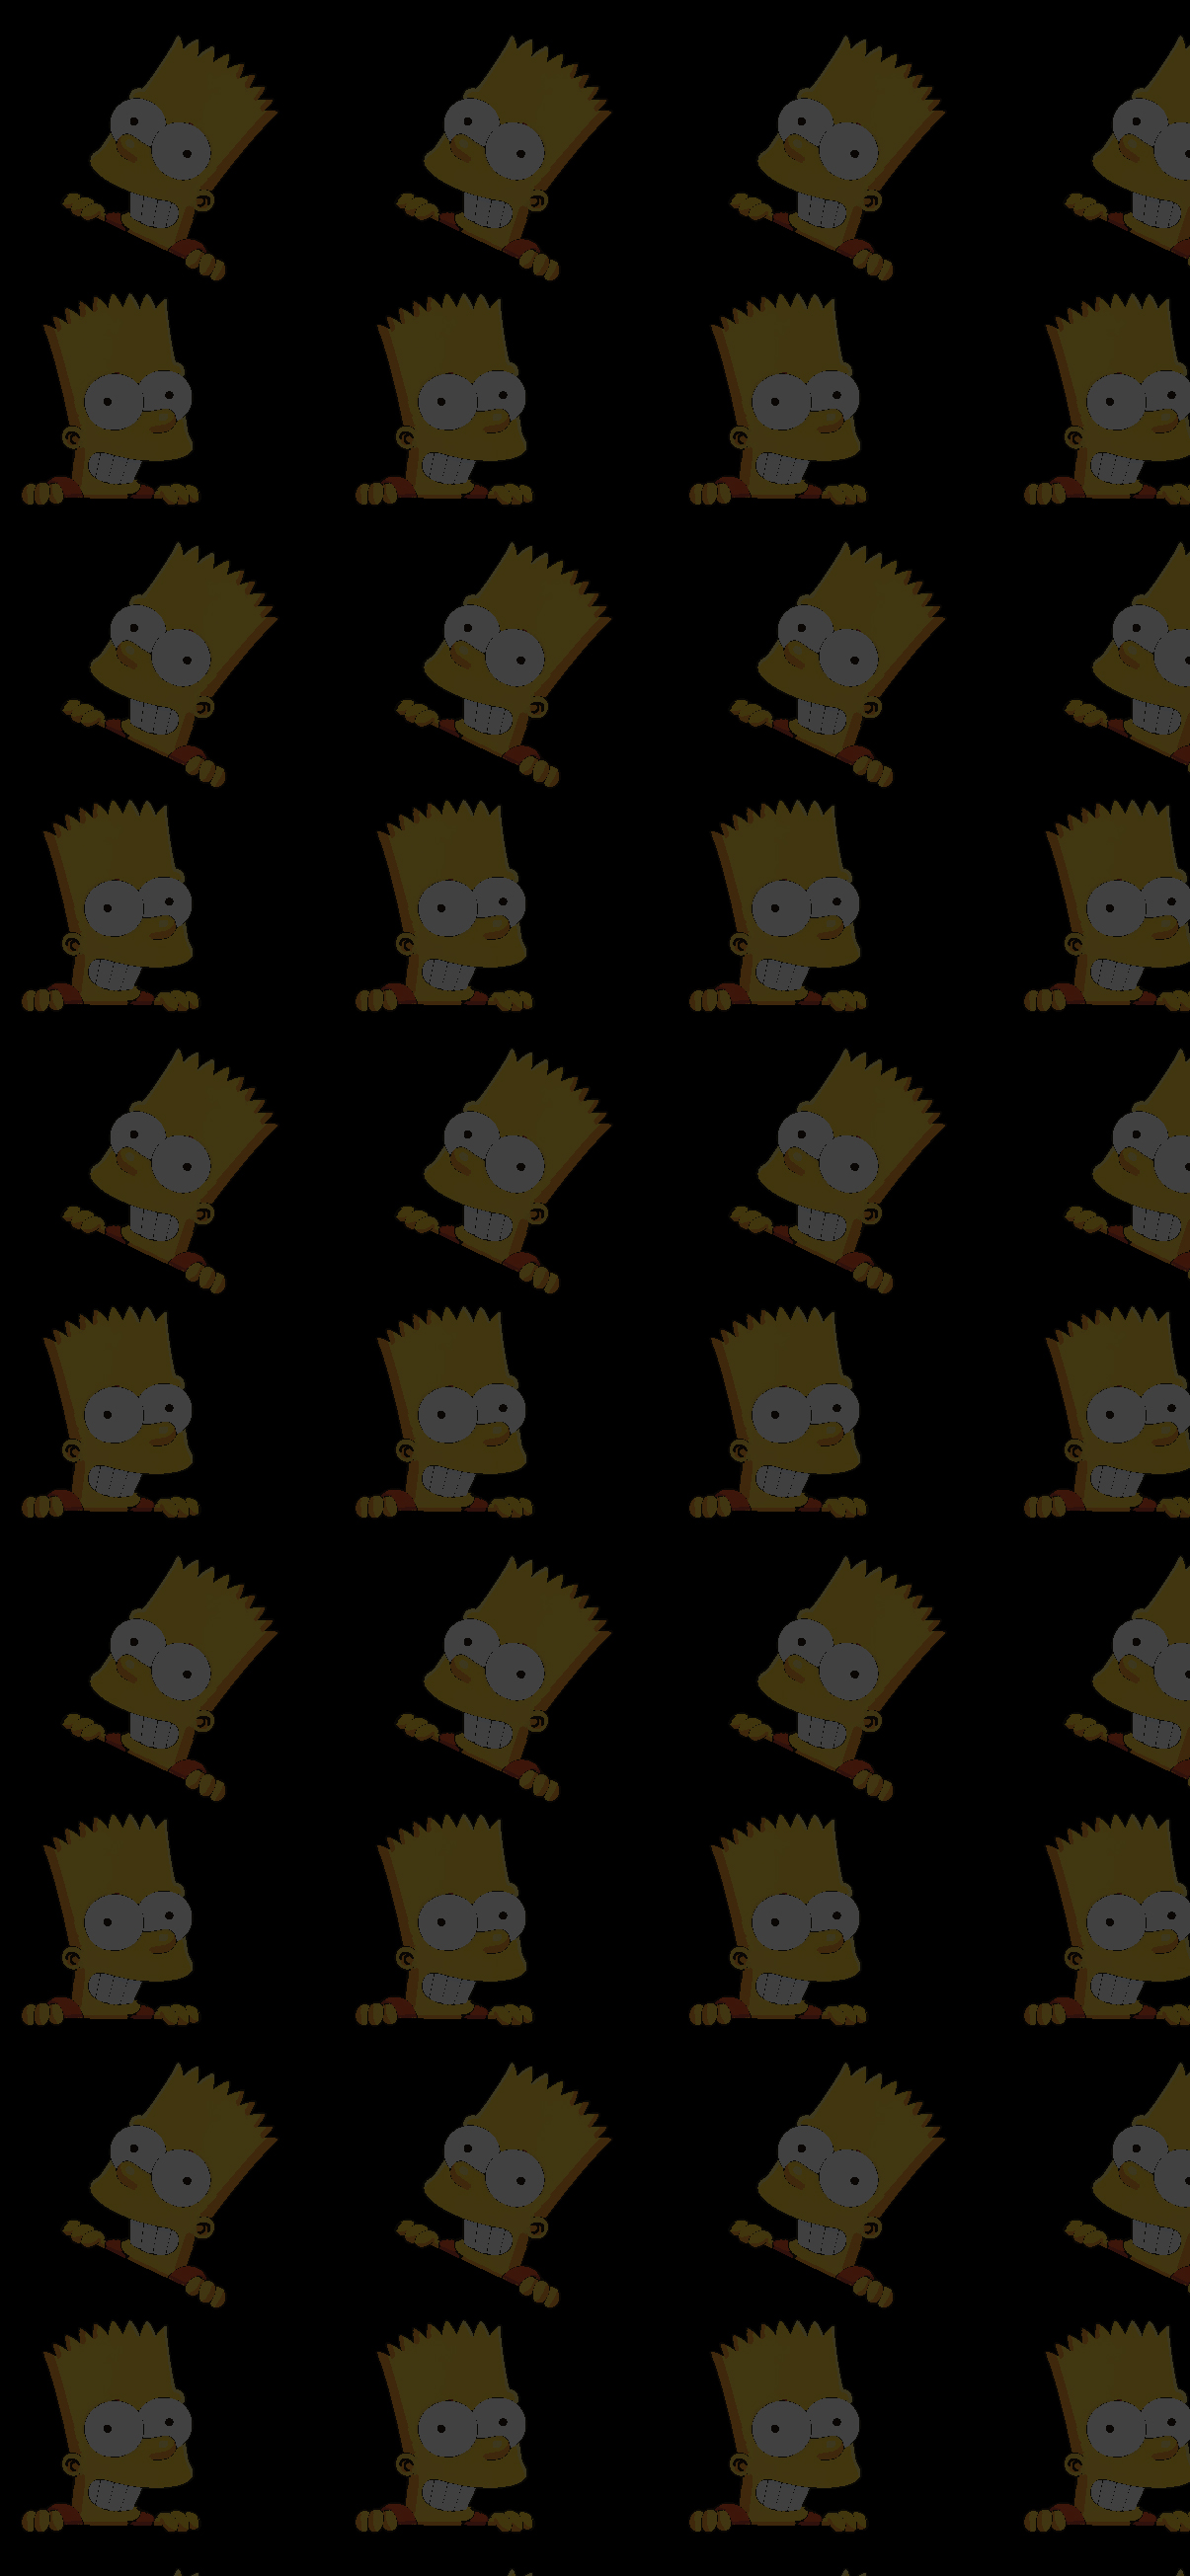 BART PATTERN BLACK WALLPAPER